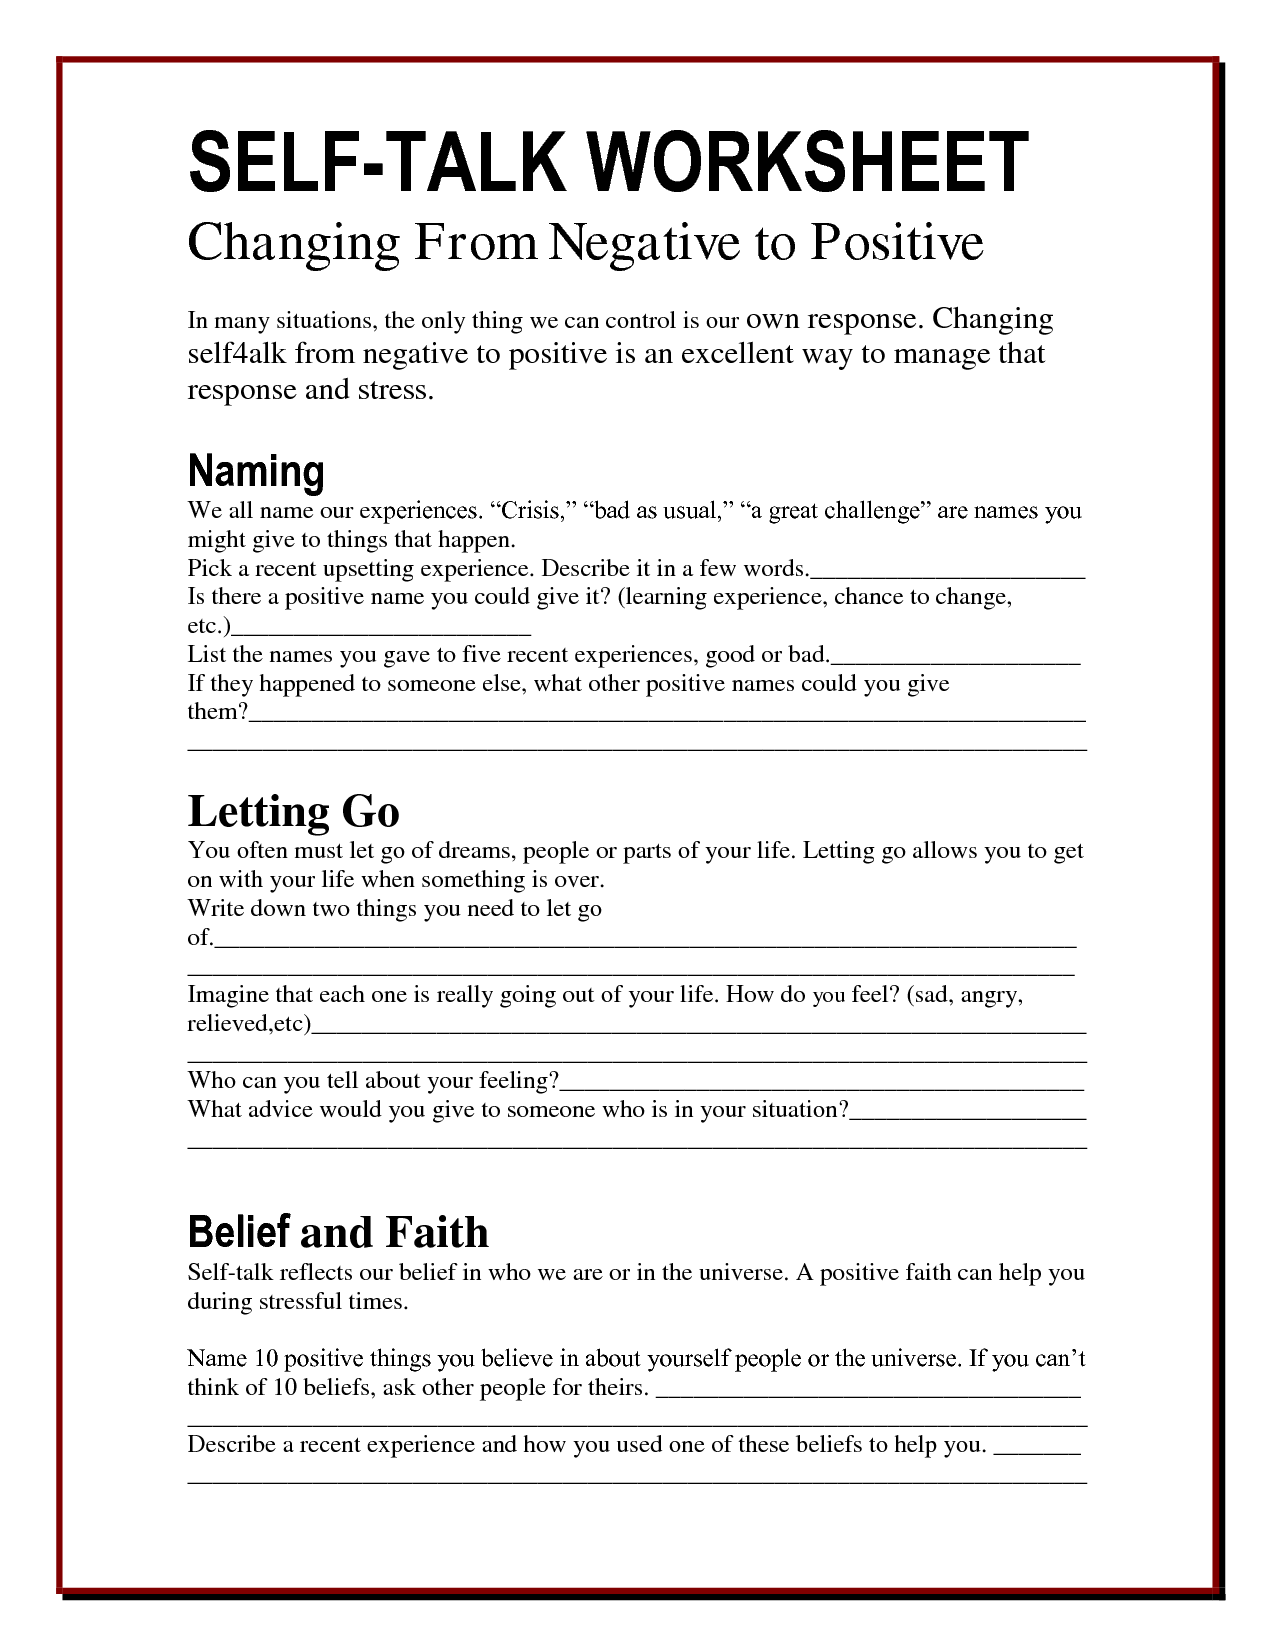 Worksheets Self Control Worksheets 1000 images about reframe anger coping skills on pinterest